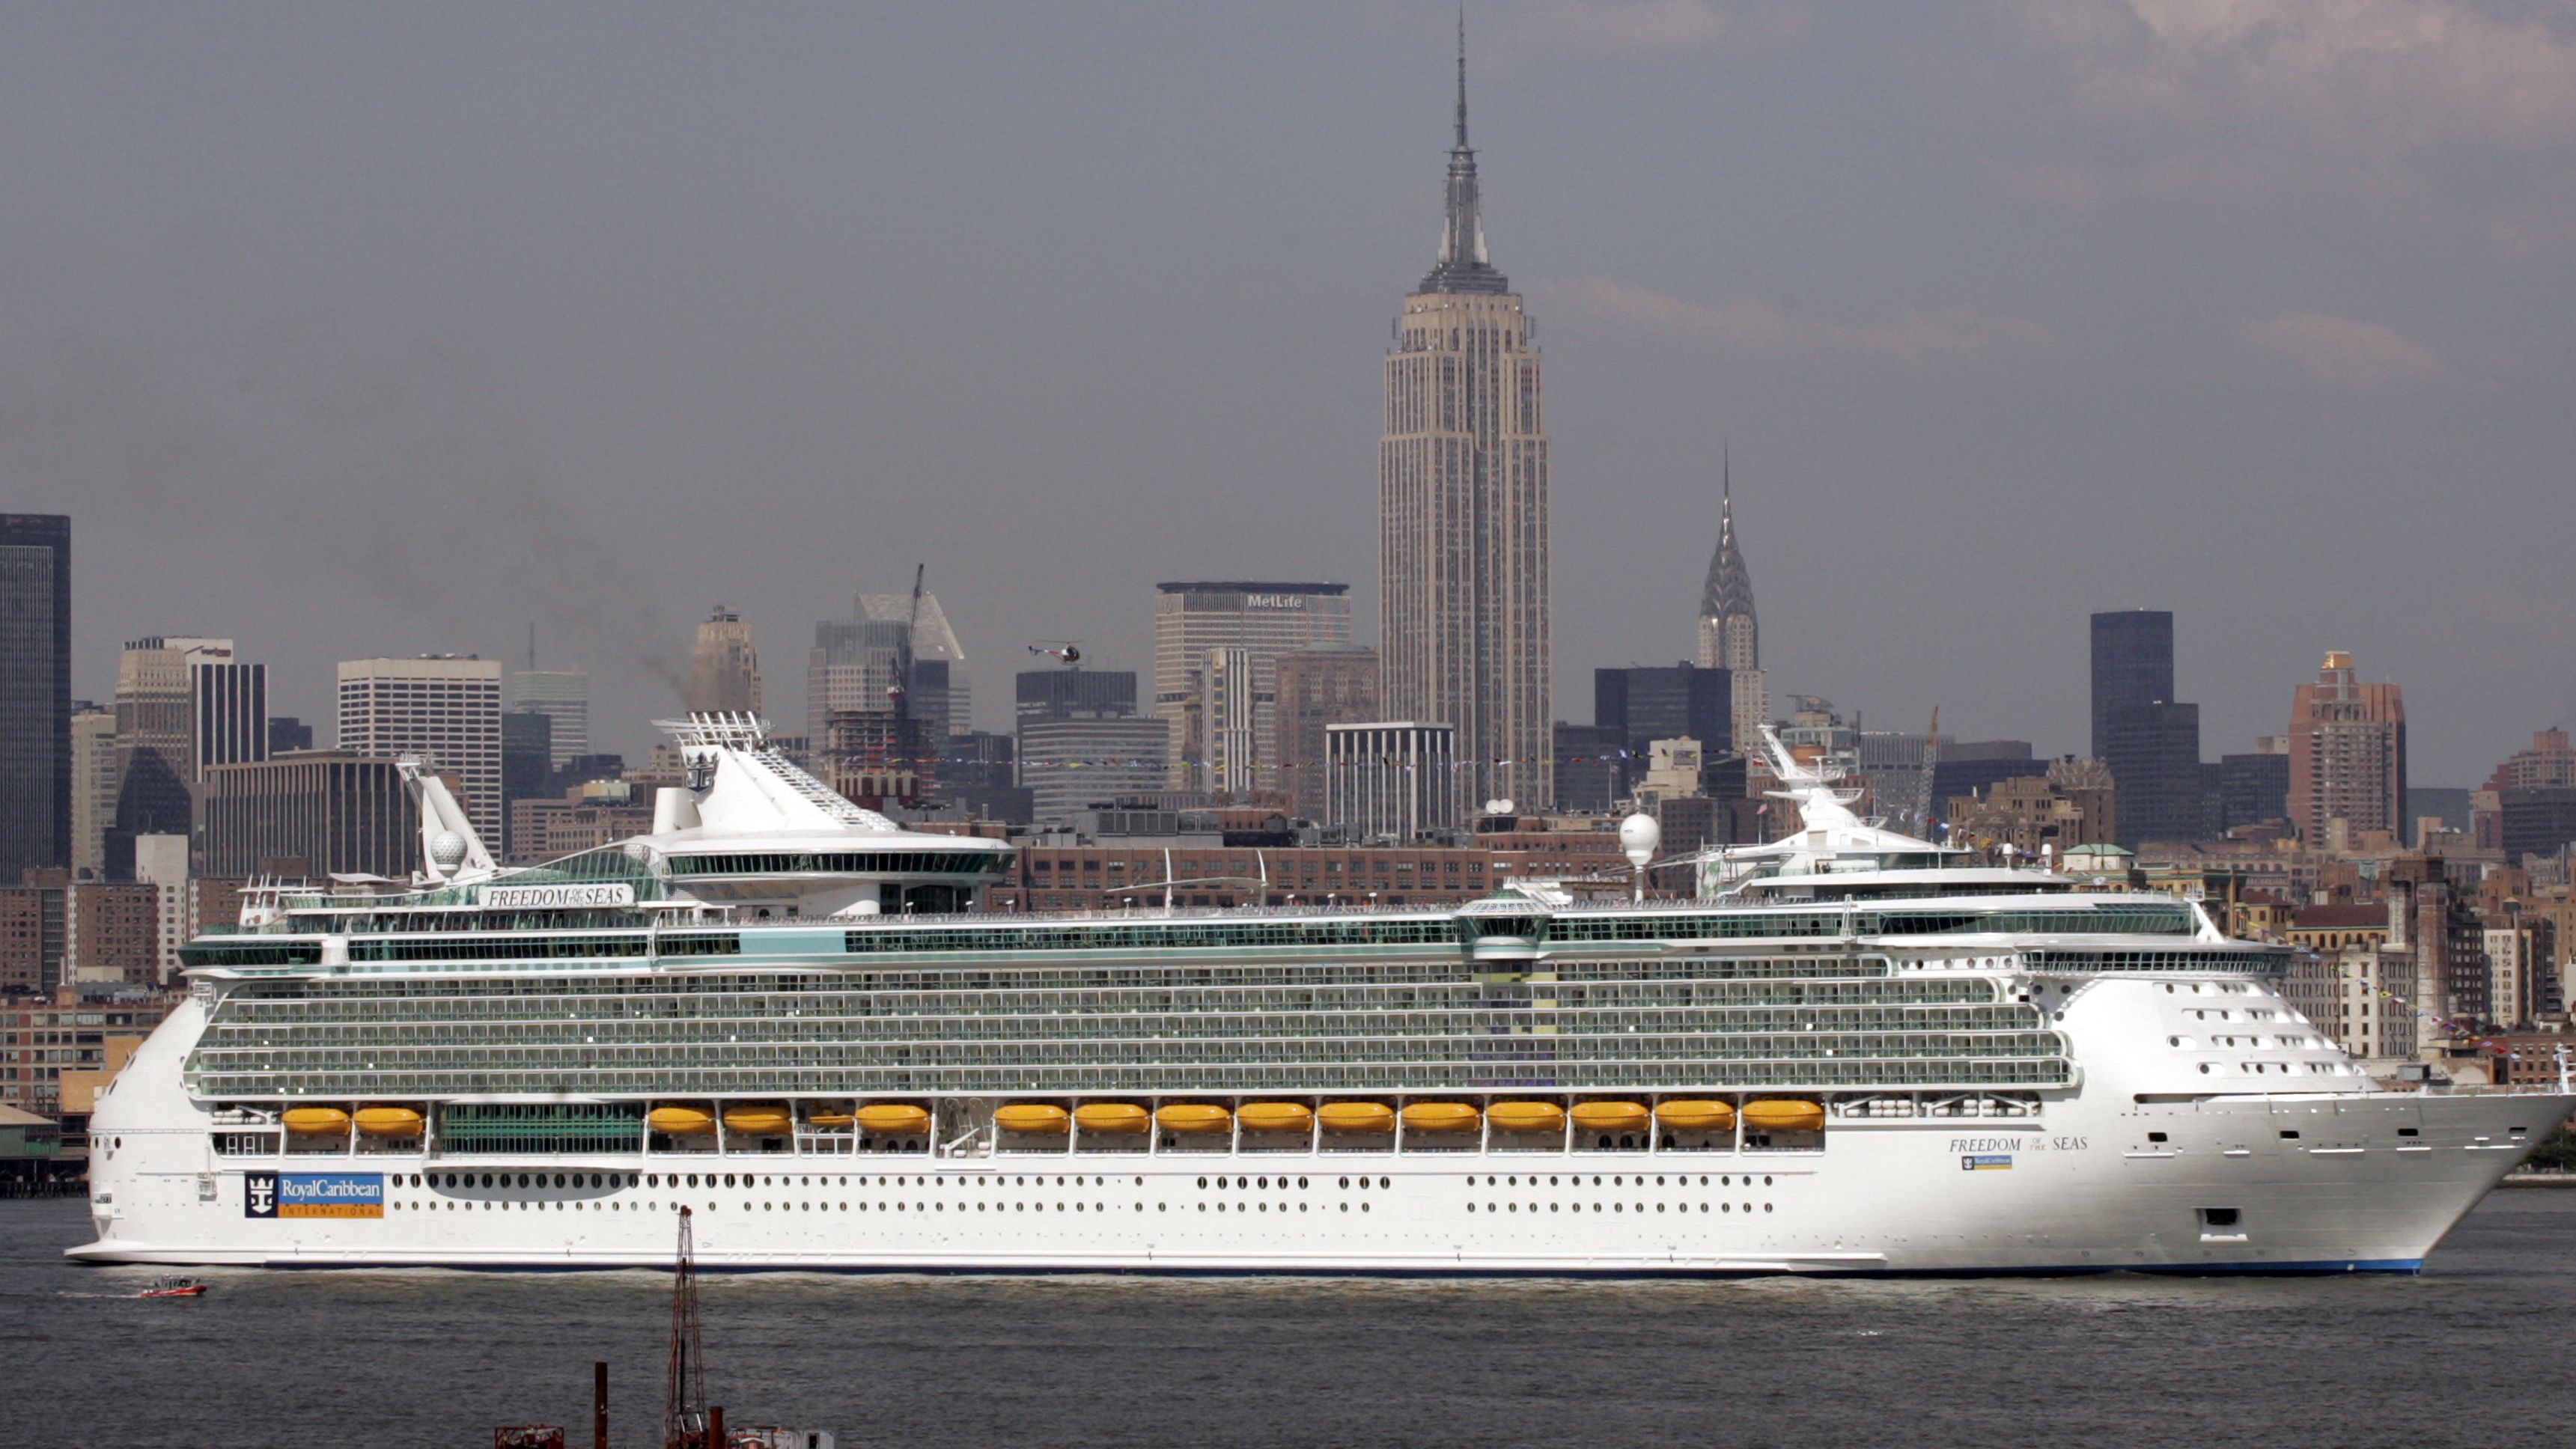 The Cruise ship 'Freedom of the Seas' makes its way down New York Harbor near the Empire State Building in New York May 13, 2006. At 158,000 tons, the Freedom of the Seas is the world's largest passenger ship.REUTERS/Keith Bedford